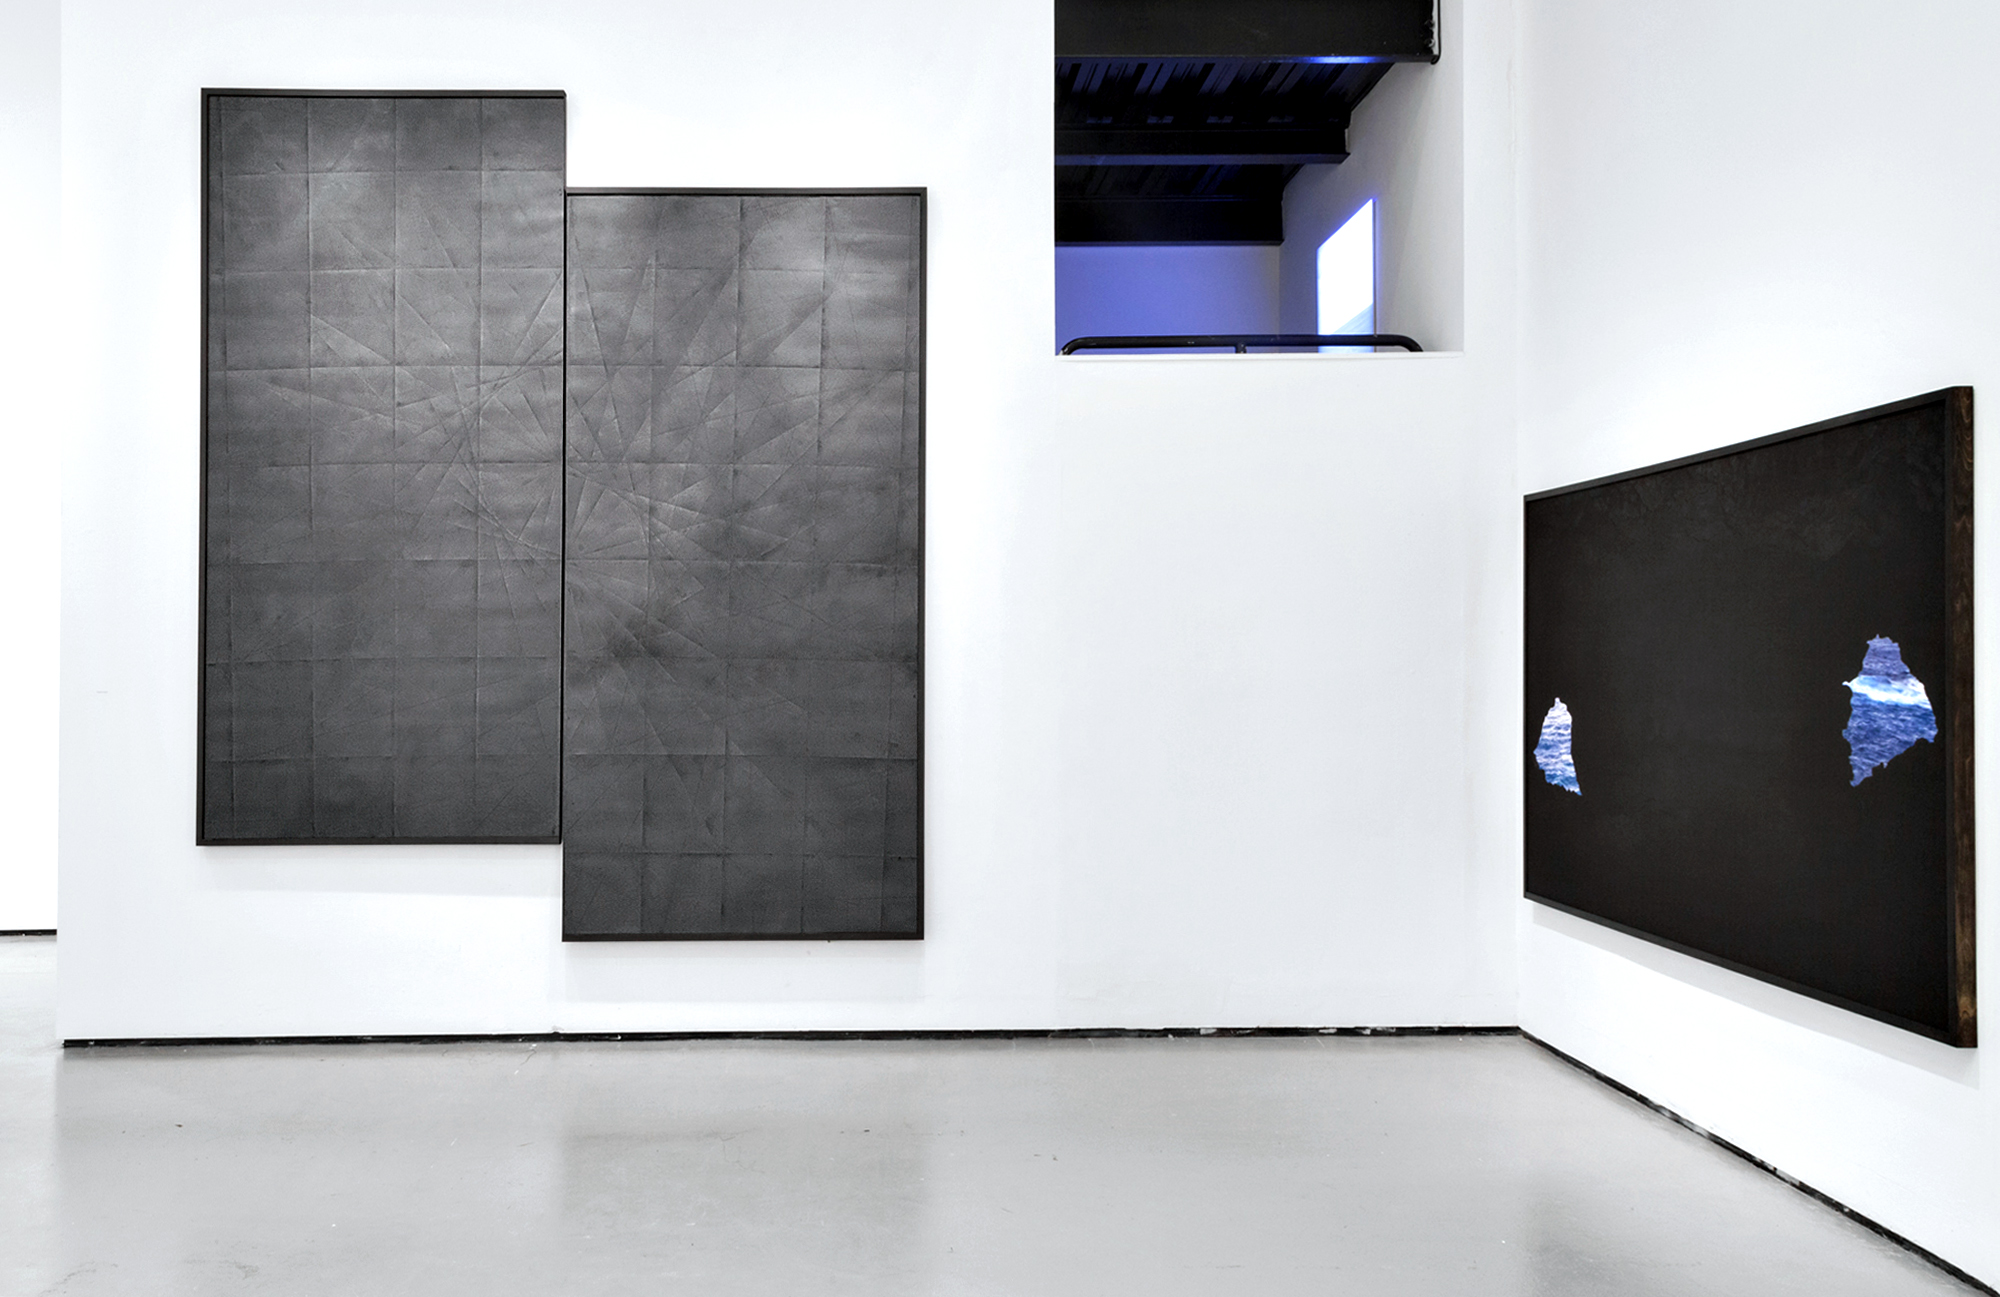 Installation view of 27.1167°S, 109.3667°W